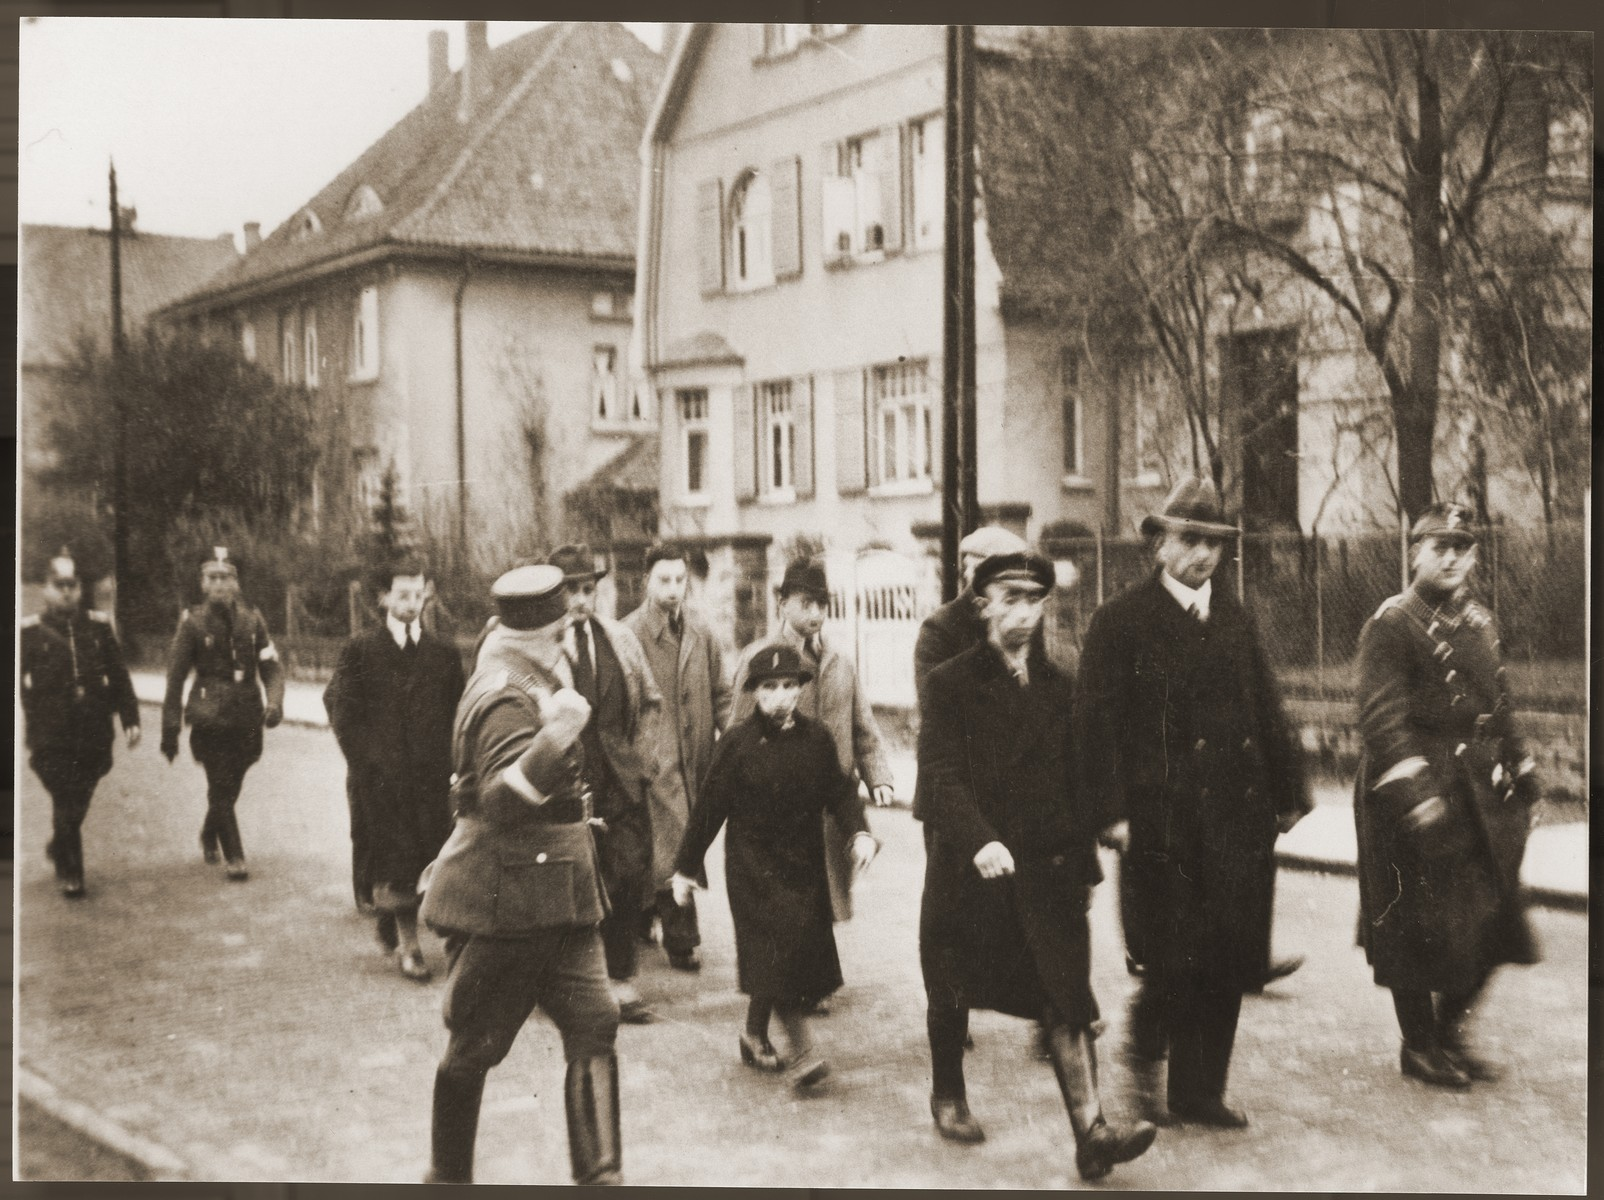 A small group of Jews, who have been rounded-up for arrest after Kristallnacht, is escorted down a street by German police, SA and SS members.